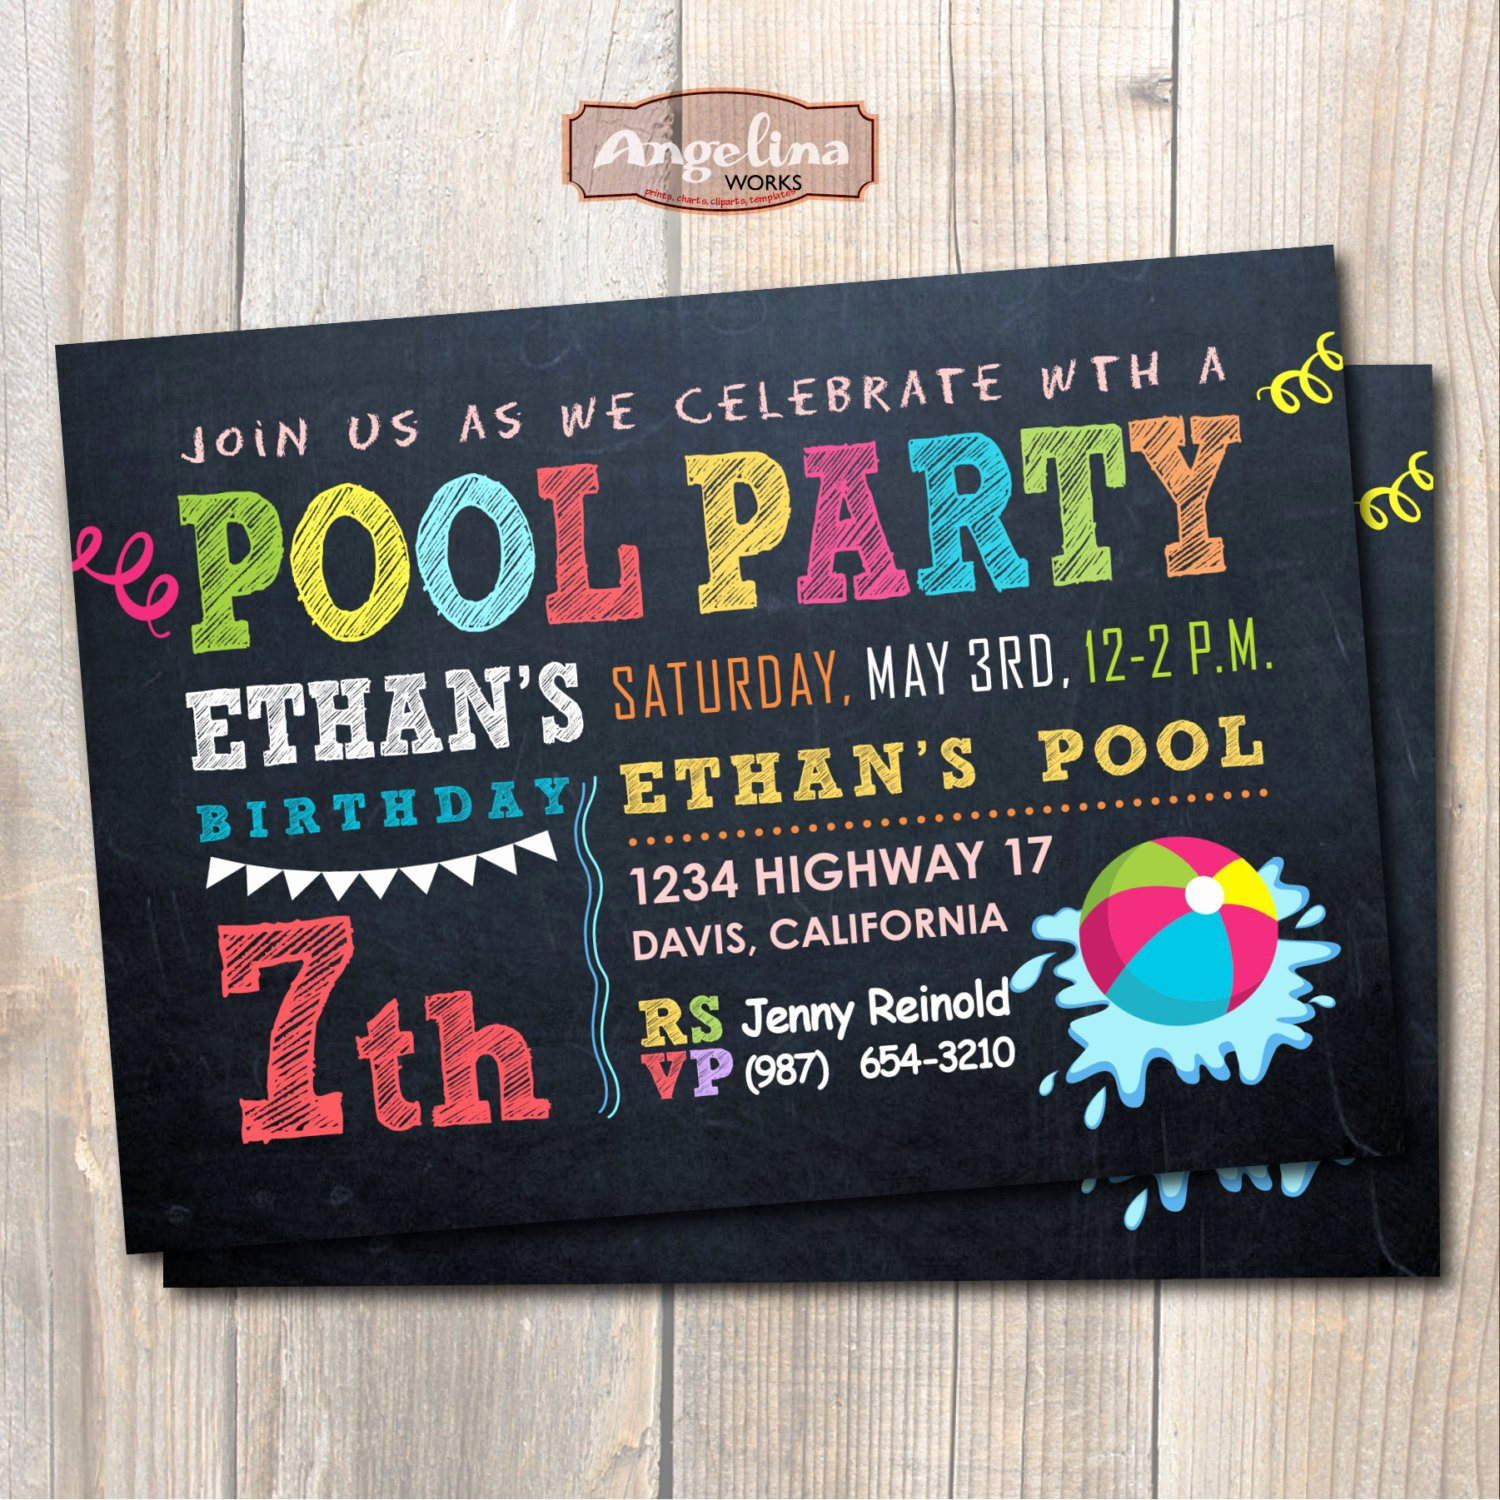 Summer Pool Party Invitations Inspirational Chalkboard Pool Party Invitation Summer Party Diy Card